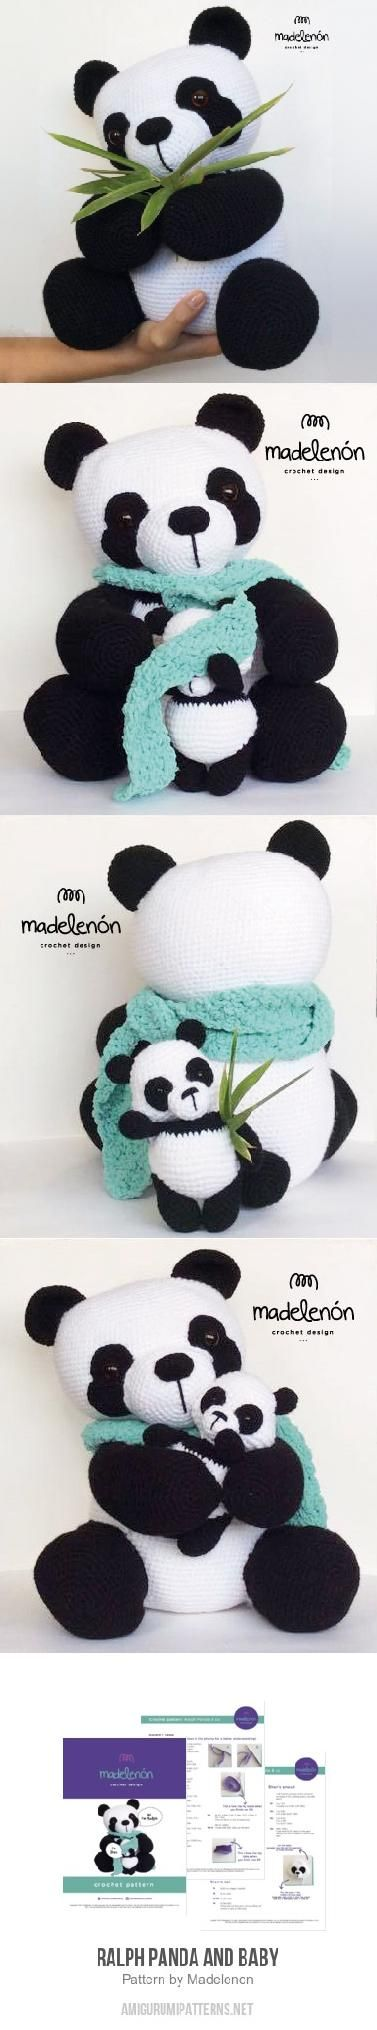 Ralph Panda and Baby amigurumi pattern by Madelenon | Ganchillo ...